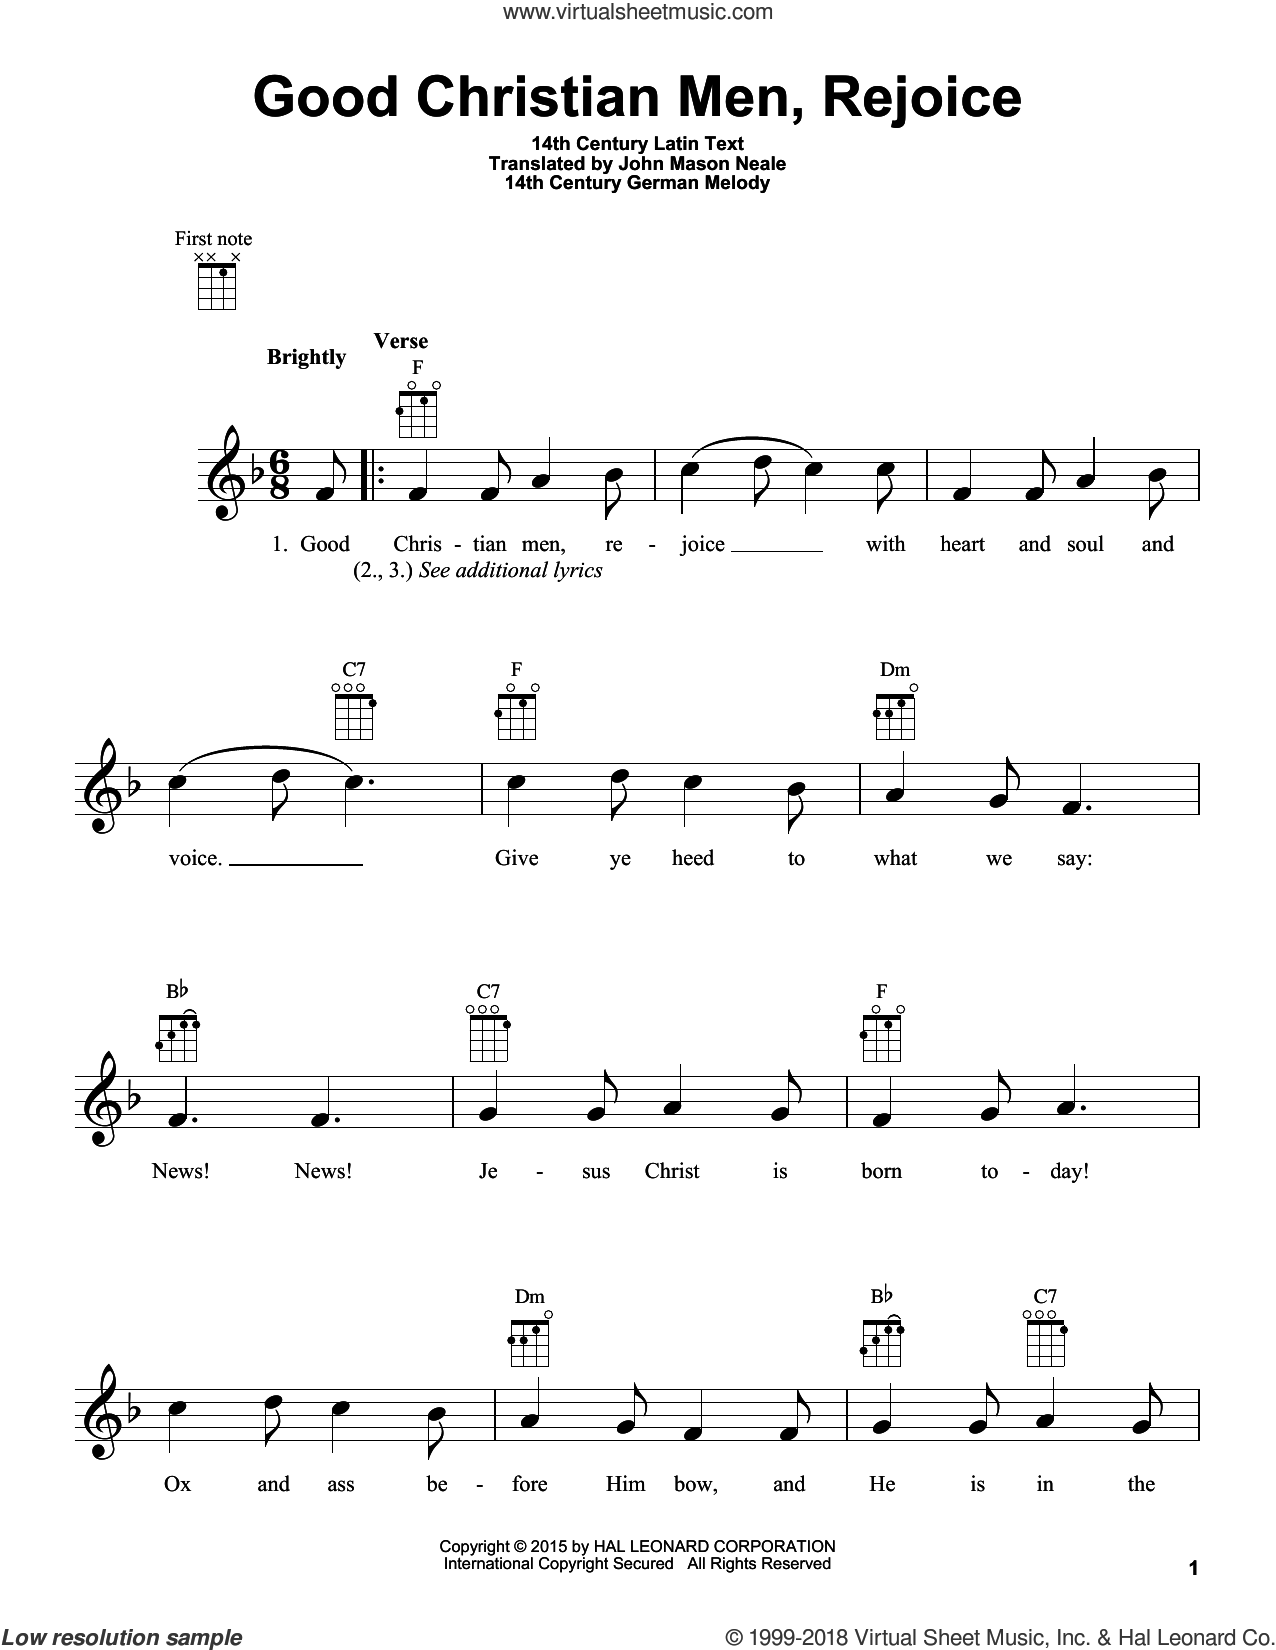 Good Christian Men, Rejoice sheet music for ukulele by John Mason Neale and Miscellaneous, intermediate. Score Image Preview.